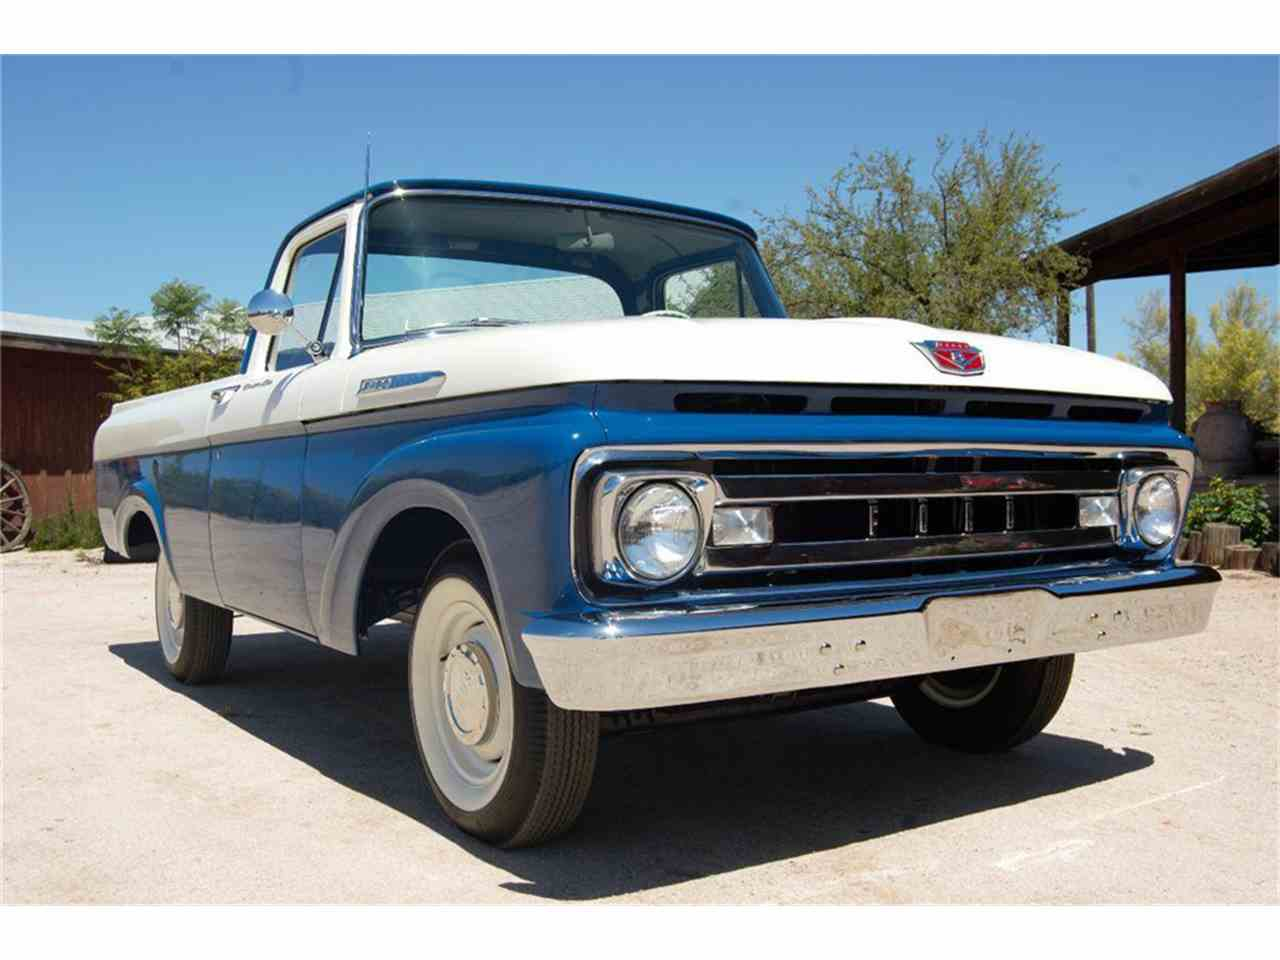 ford f100 1961 unibody pickup scottsdale cc 61 arizona listing vehicles similar bed short classiccars